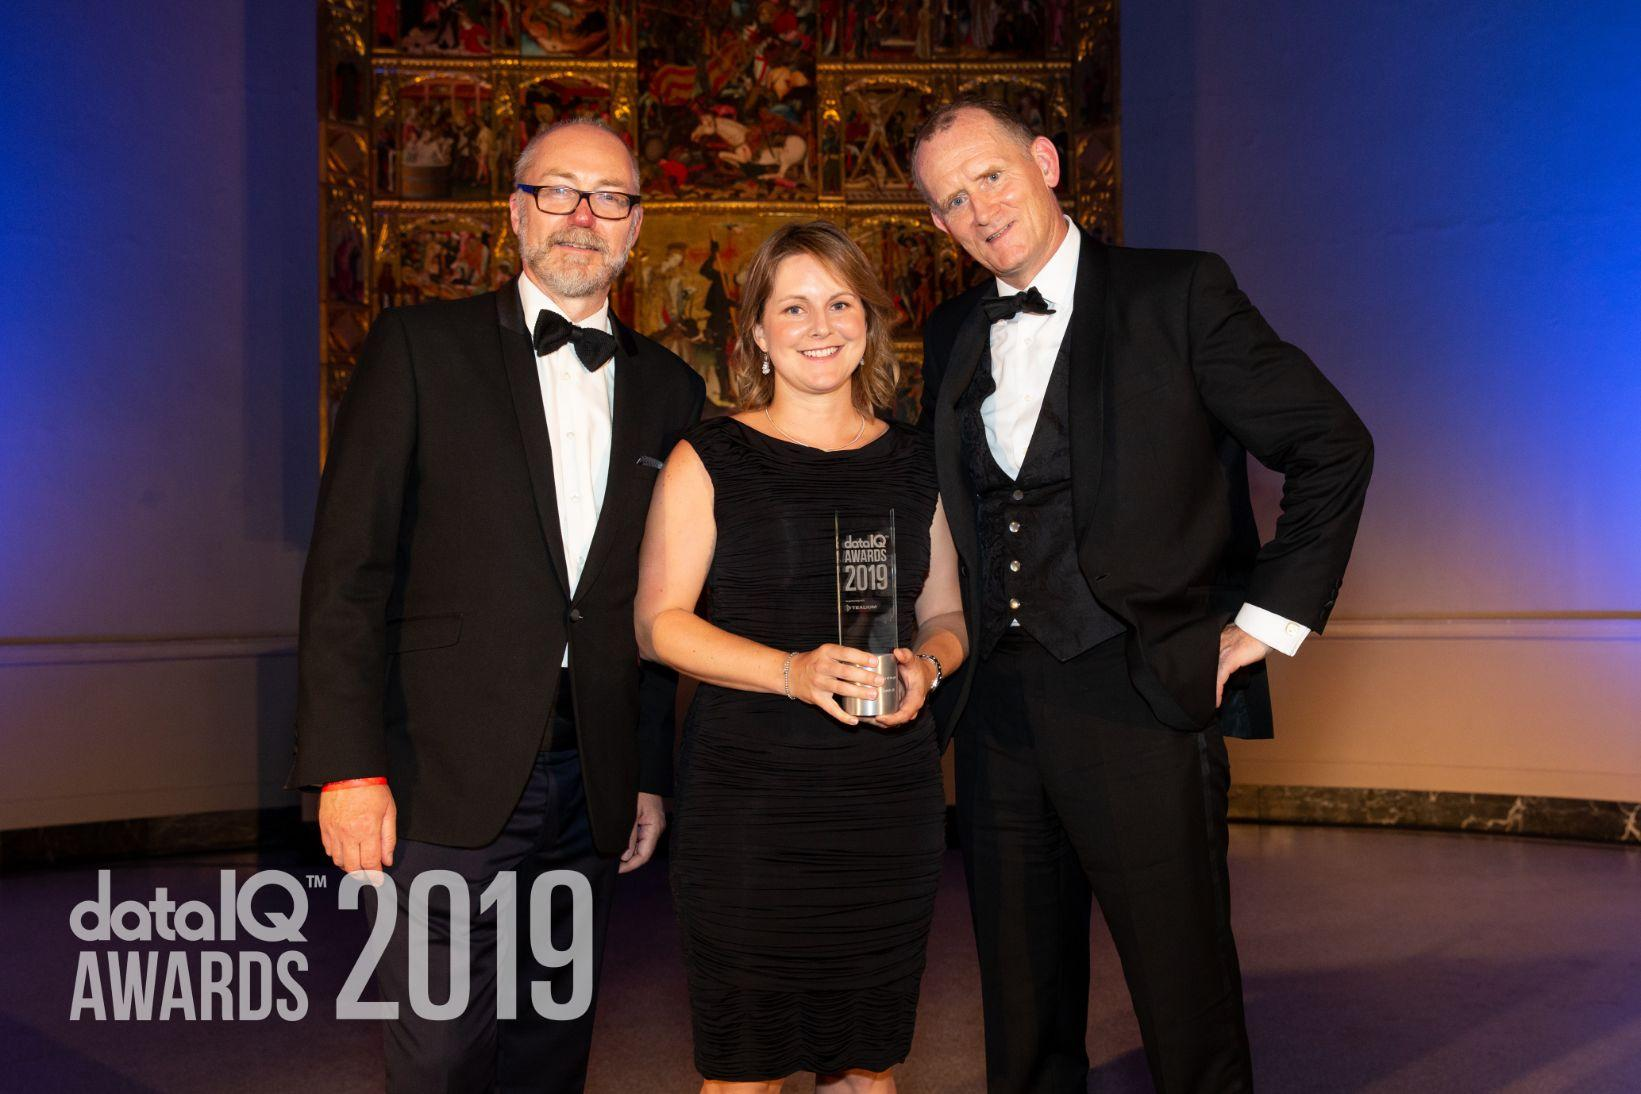 Awards 2019 Image 109